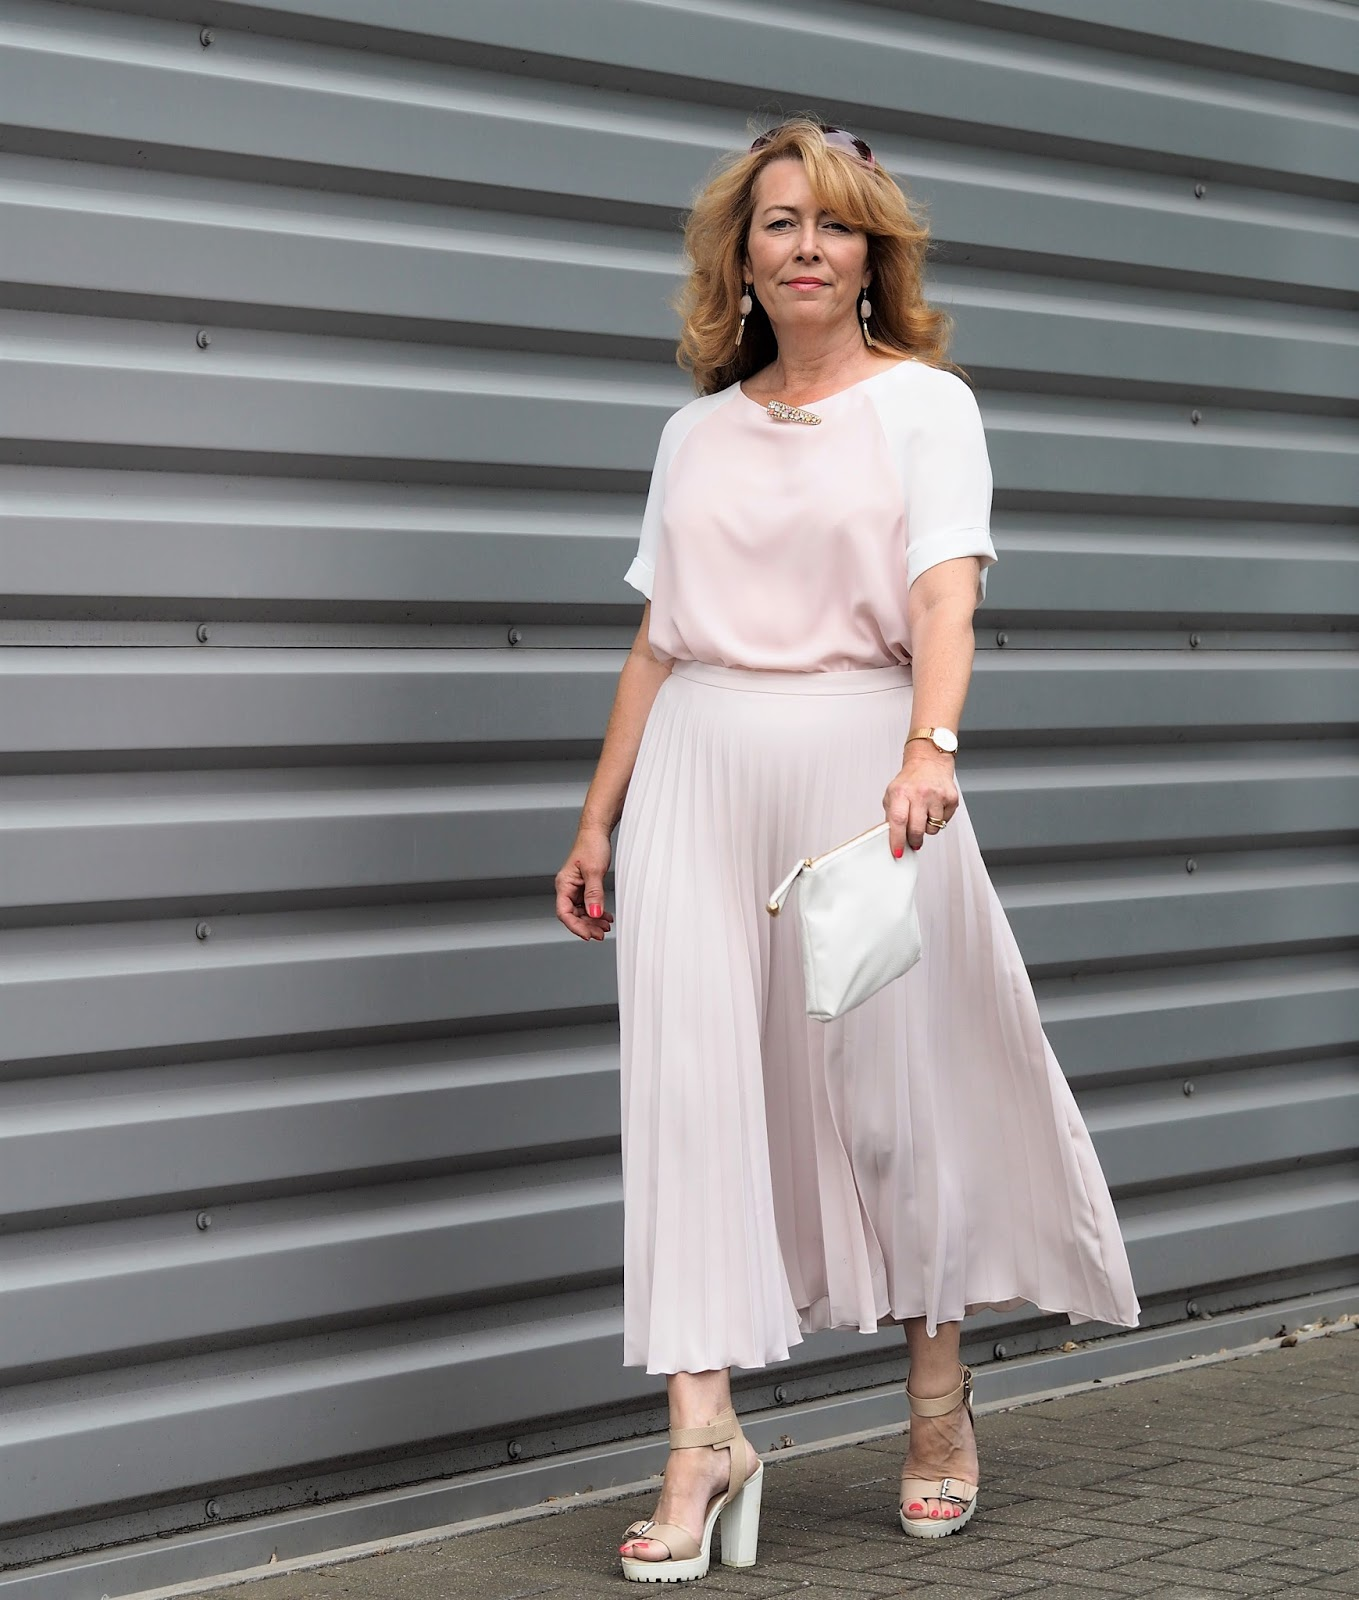 Showing how stylish monochrome can be, Vanity and Me blogger Laurie is elegant in pale pink